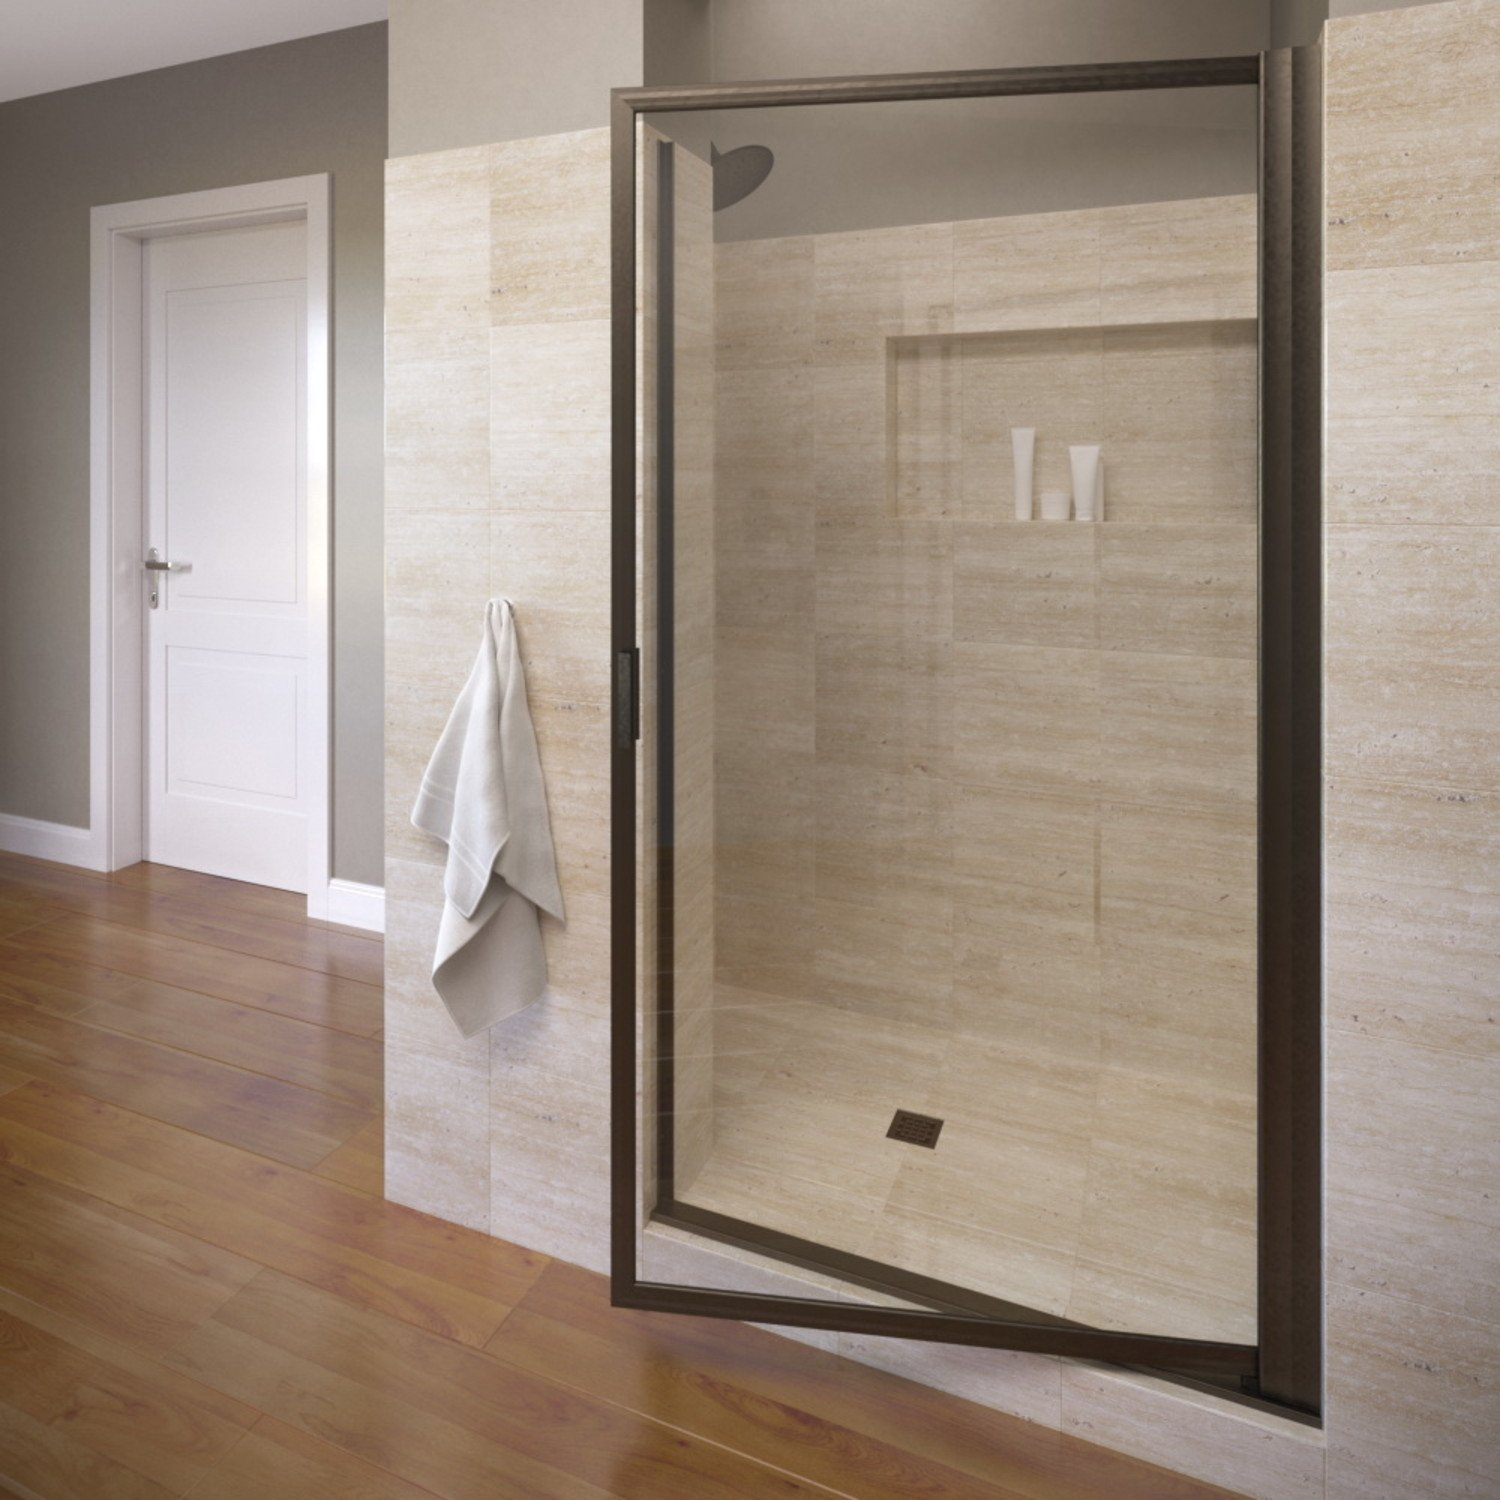 Basco Deluxe 27.25- 29 in. Width, Glass Shower Door, Clear Glass, Oil Rubbed Bronze Finish by Basco Shower Door